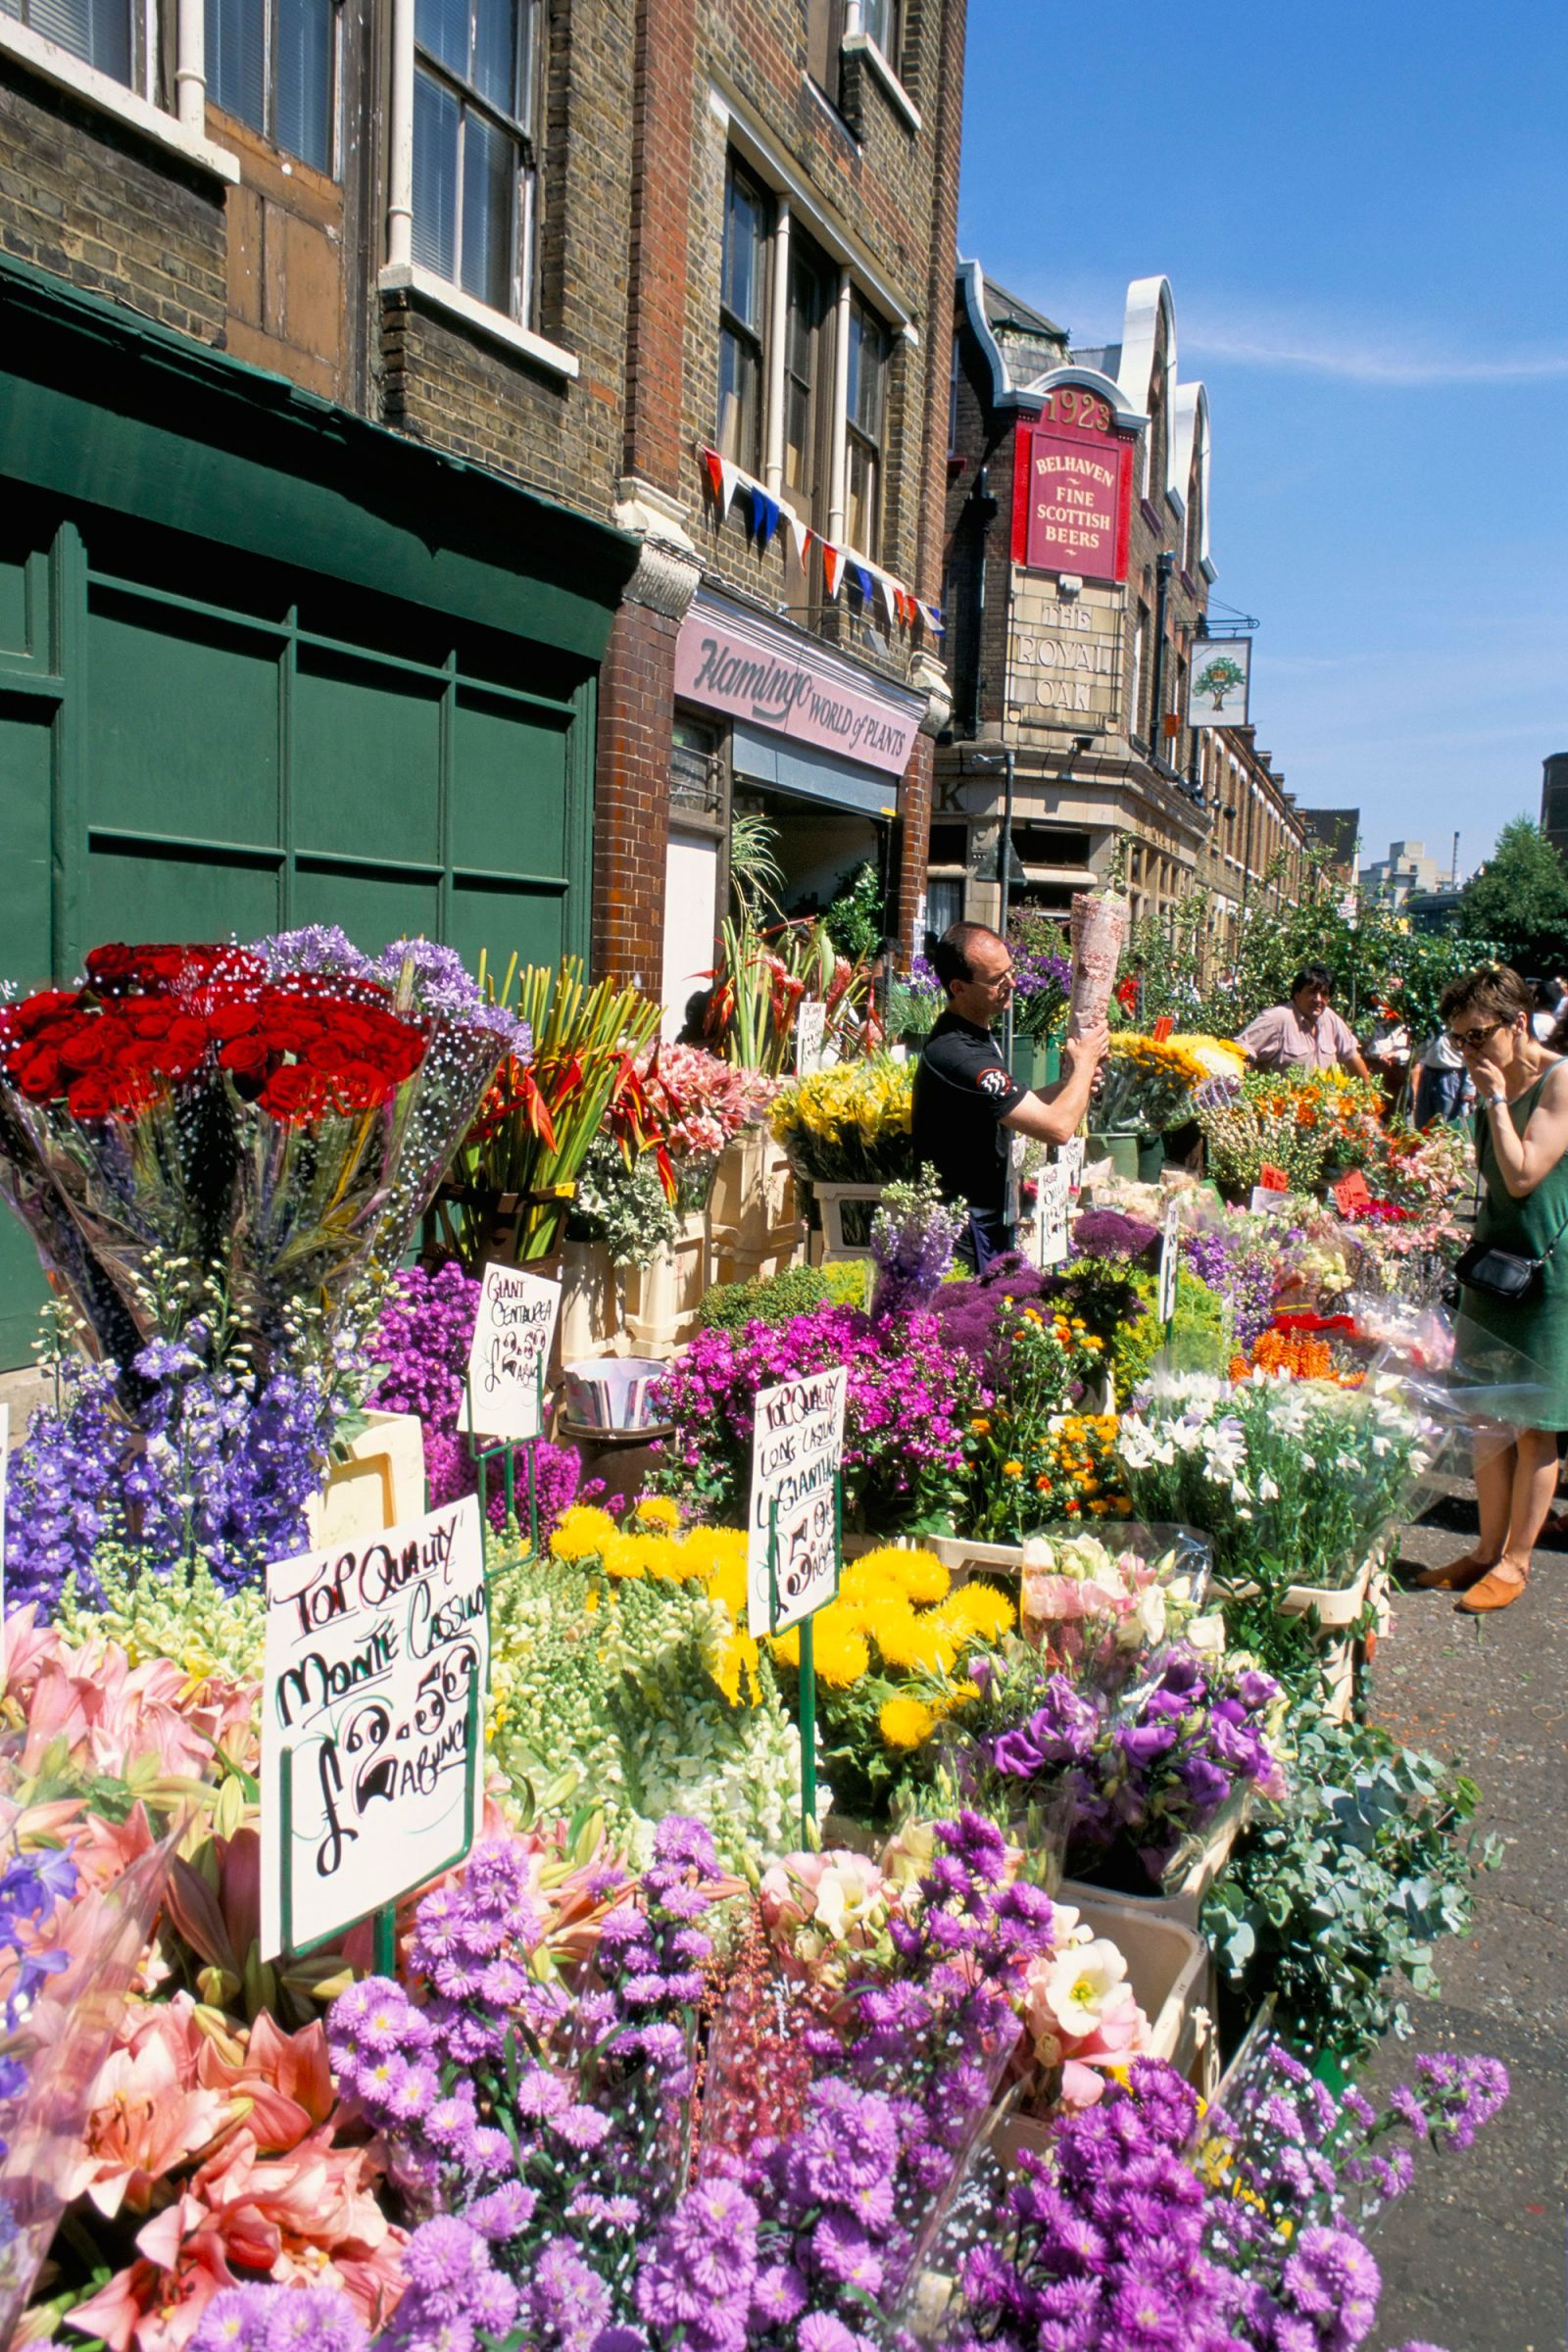 Thelist London Calling Columbia Road Flower Market Travel Guide London Flower Market